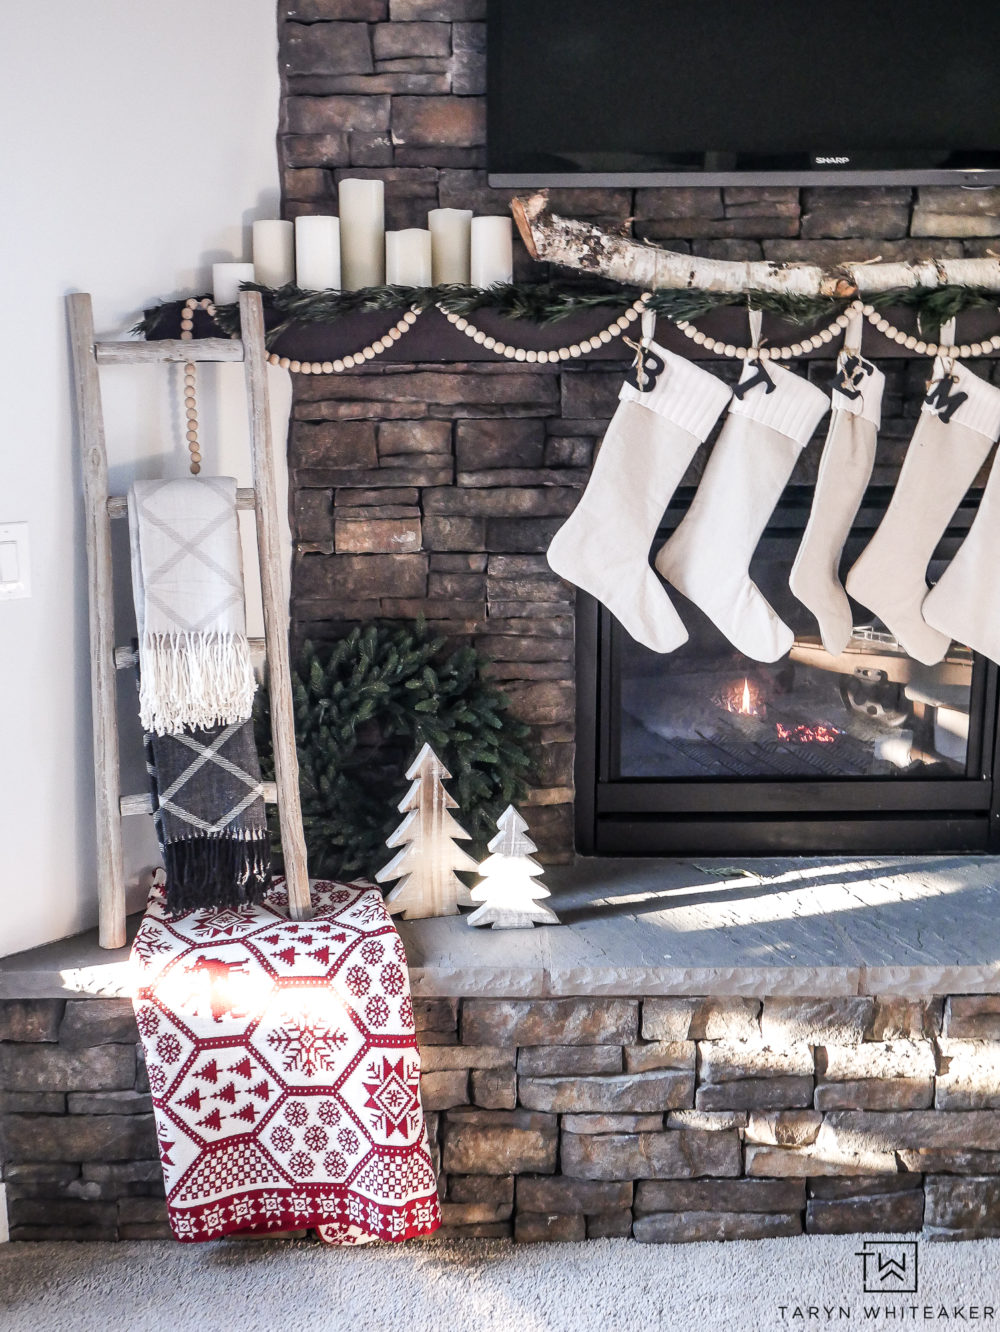 A neutral Christmas mantel with pops of red and green decor. Love the simple white candles and greenery on the mantel along with wood bead garland.